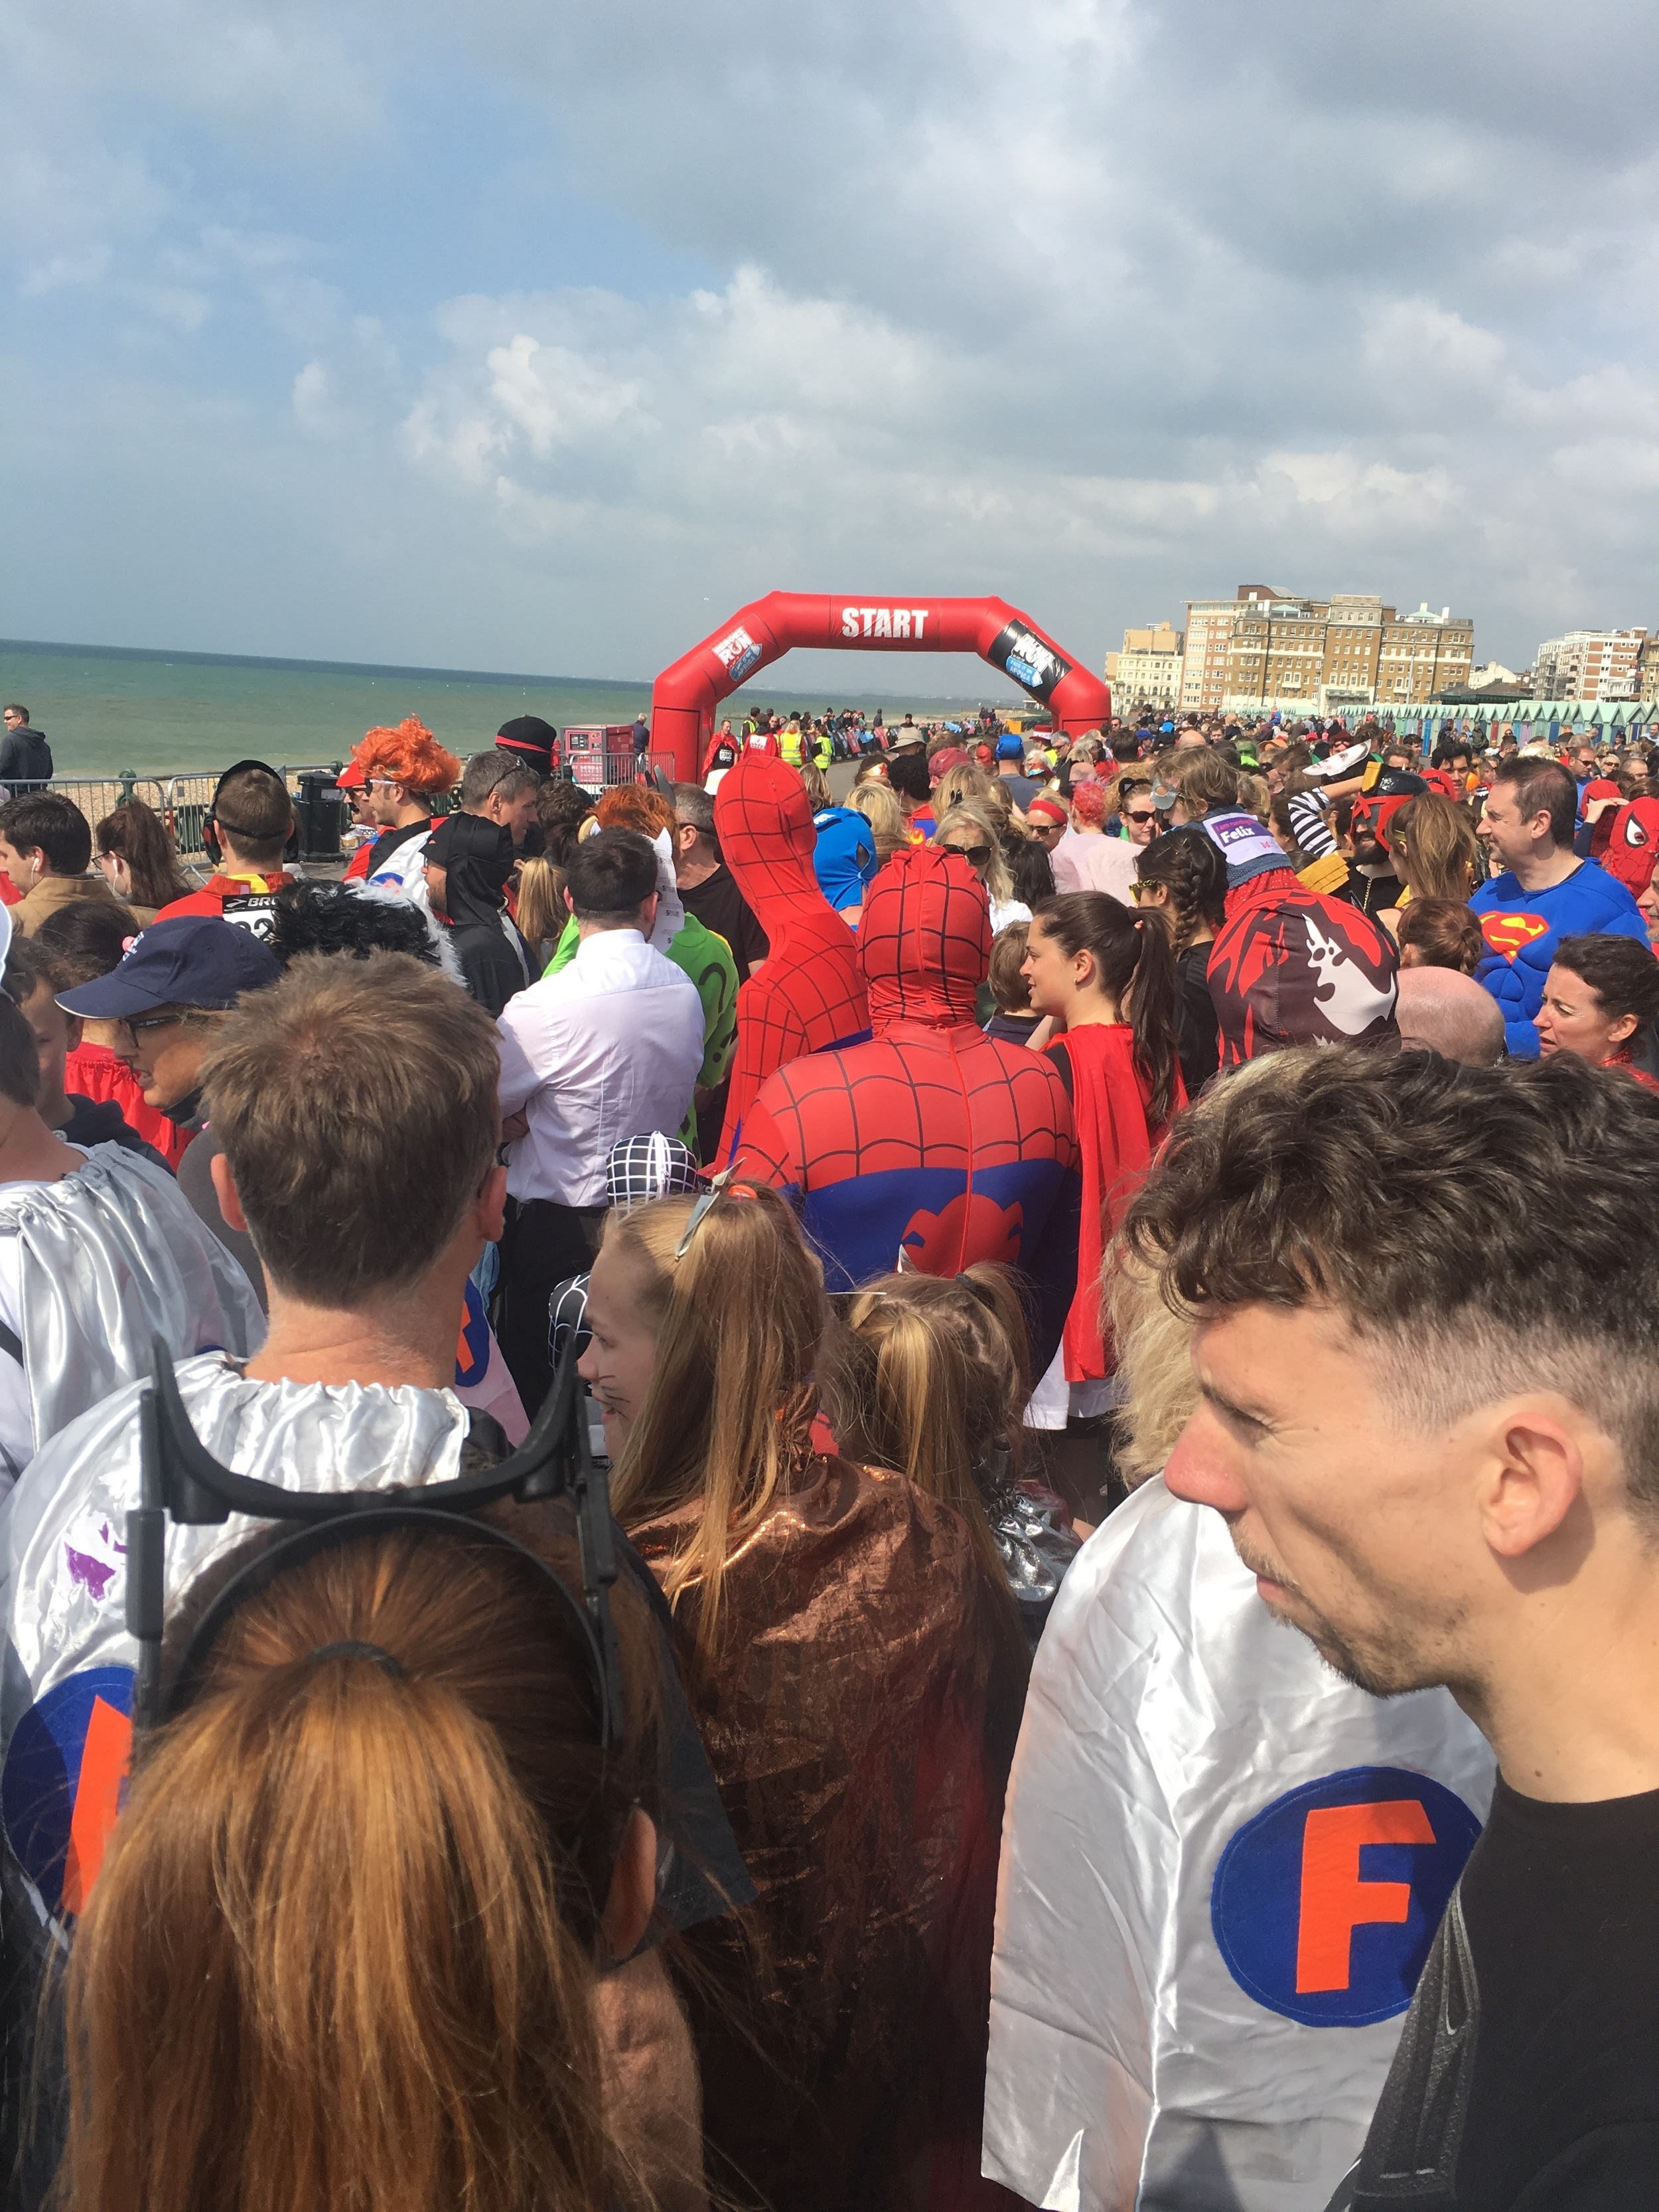 The line up before the start of the Heroes Run on Hove Lawns